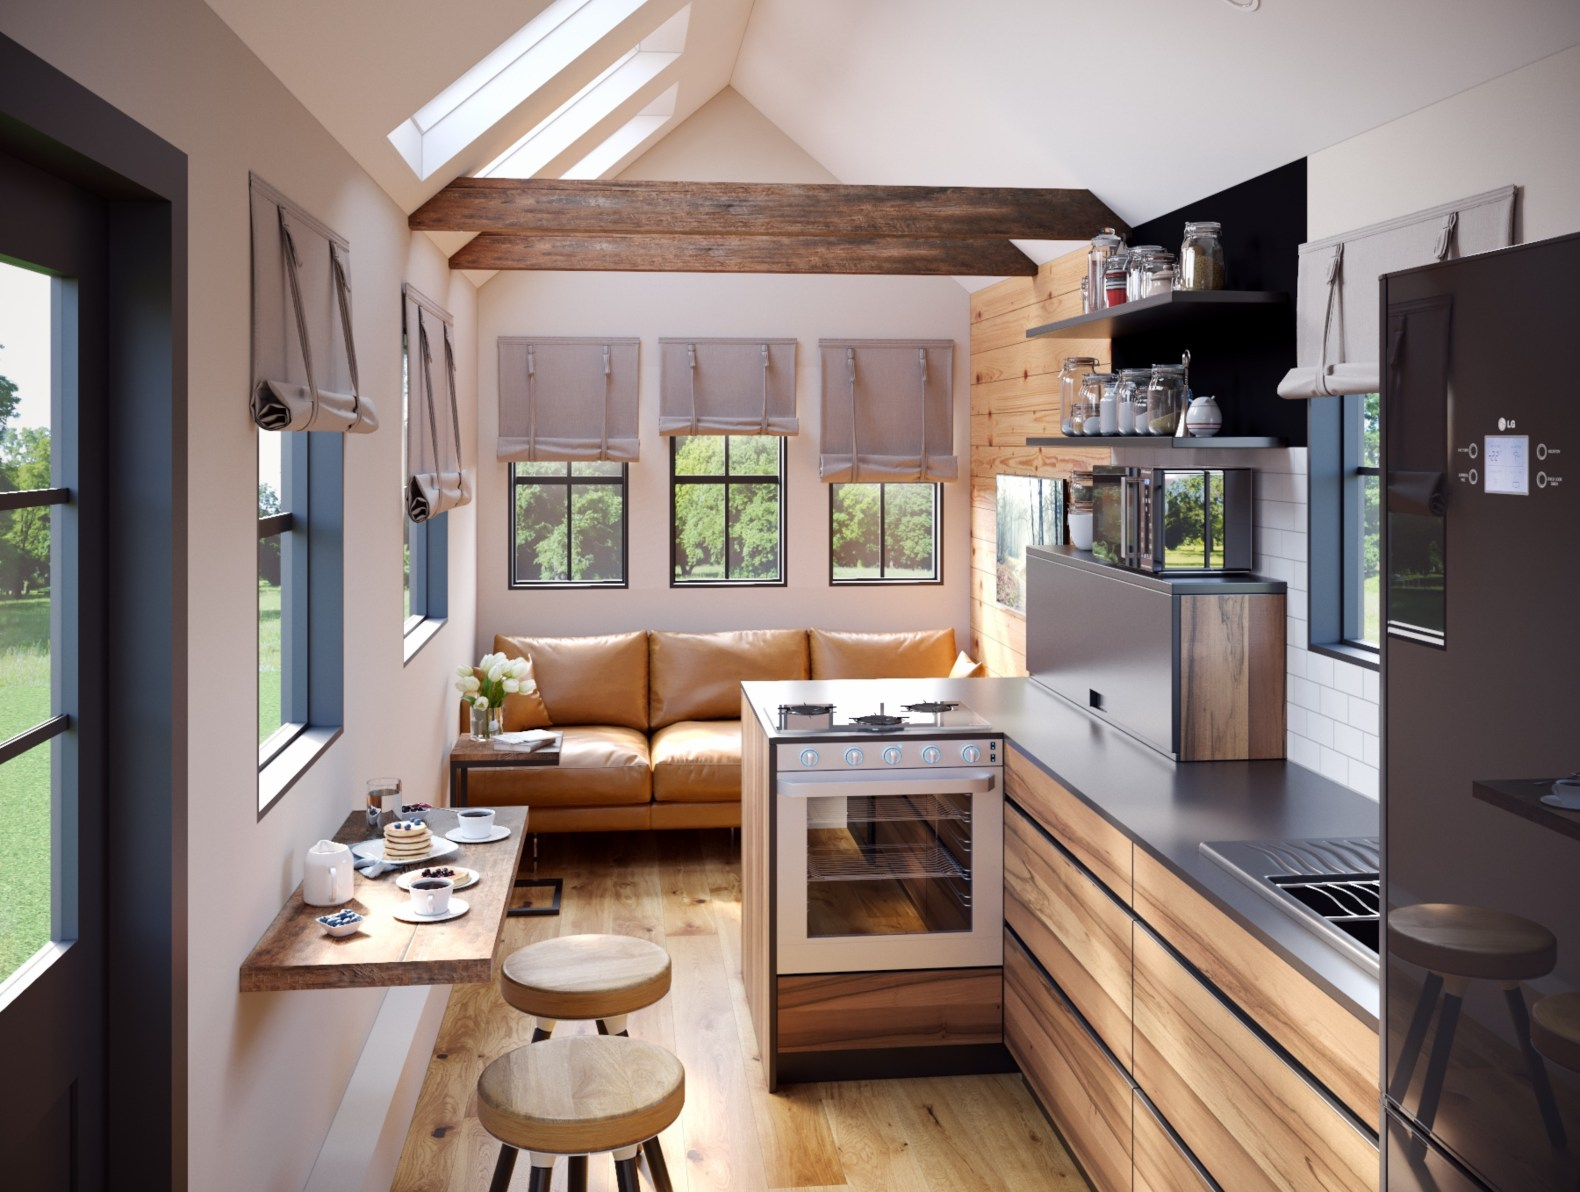 Interior Living E With Kitchen And Room